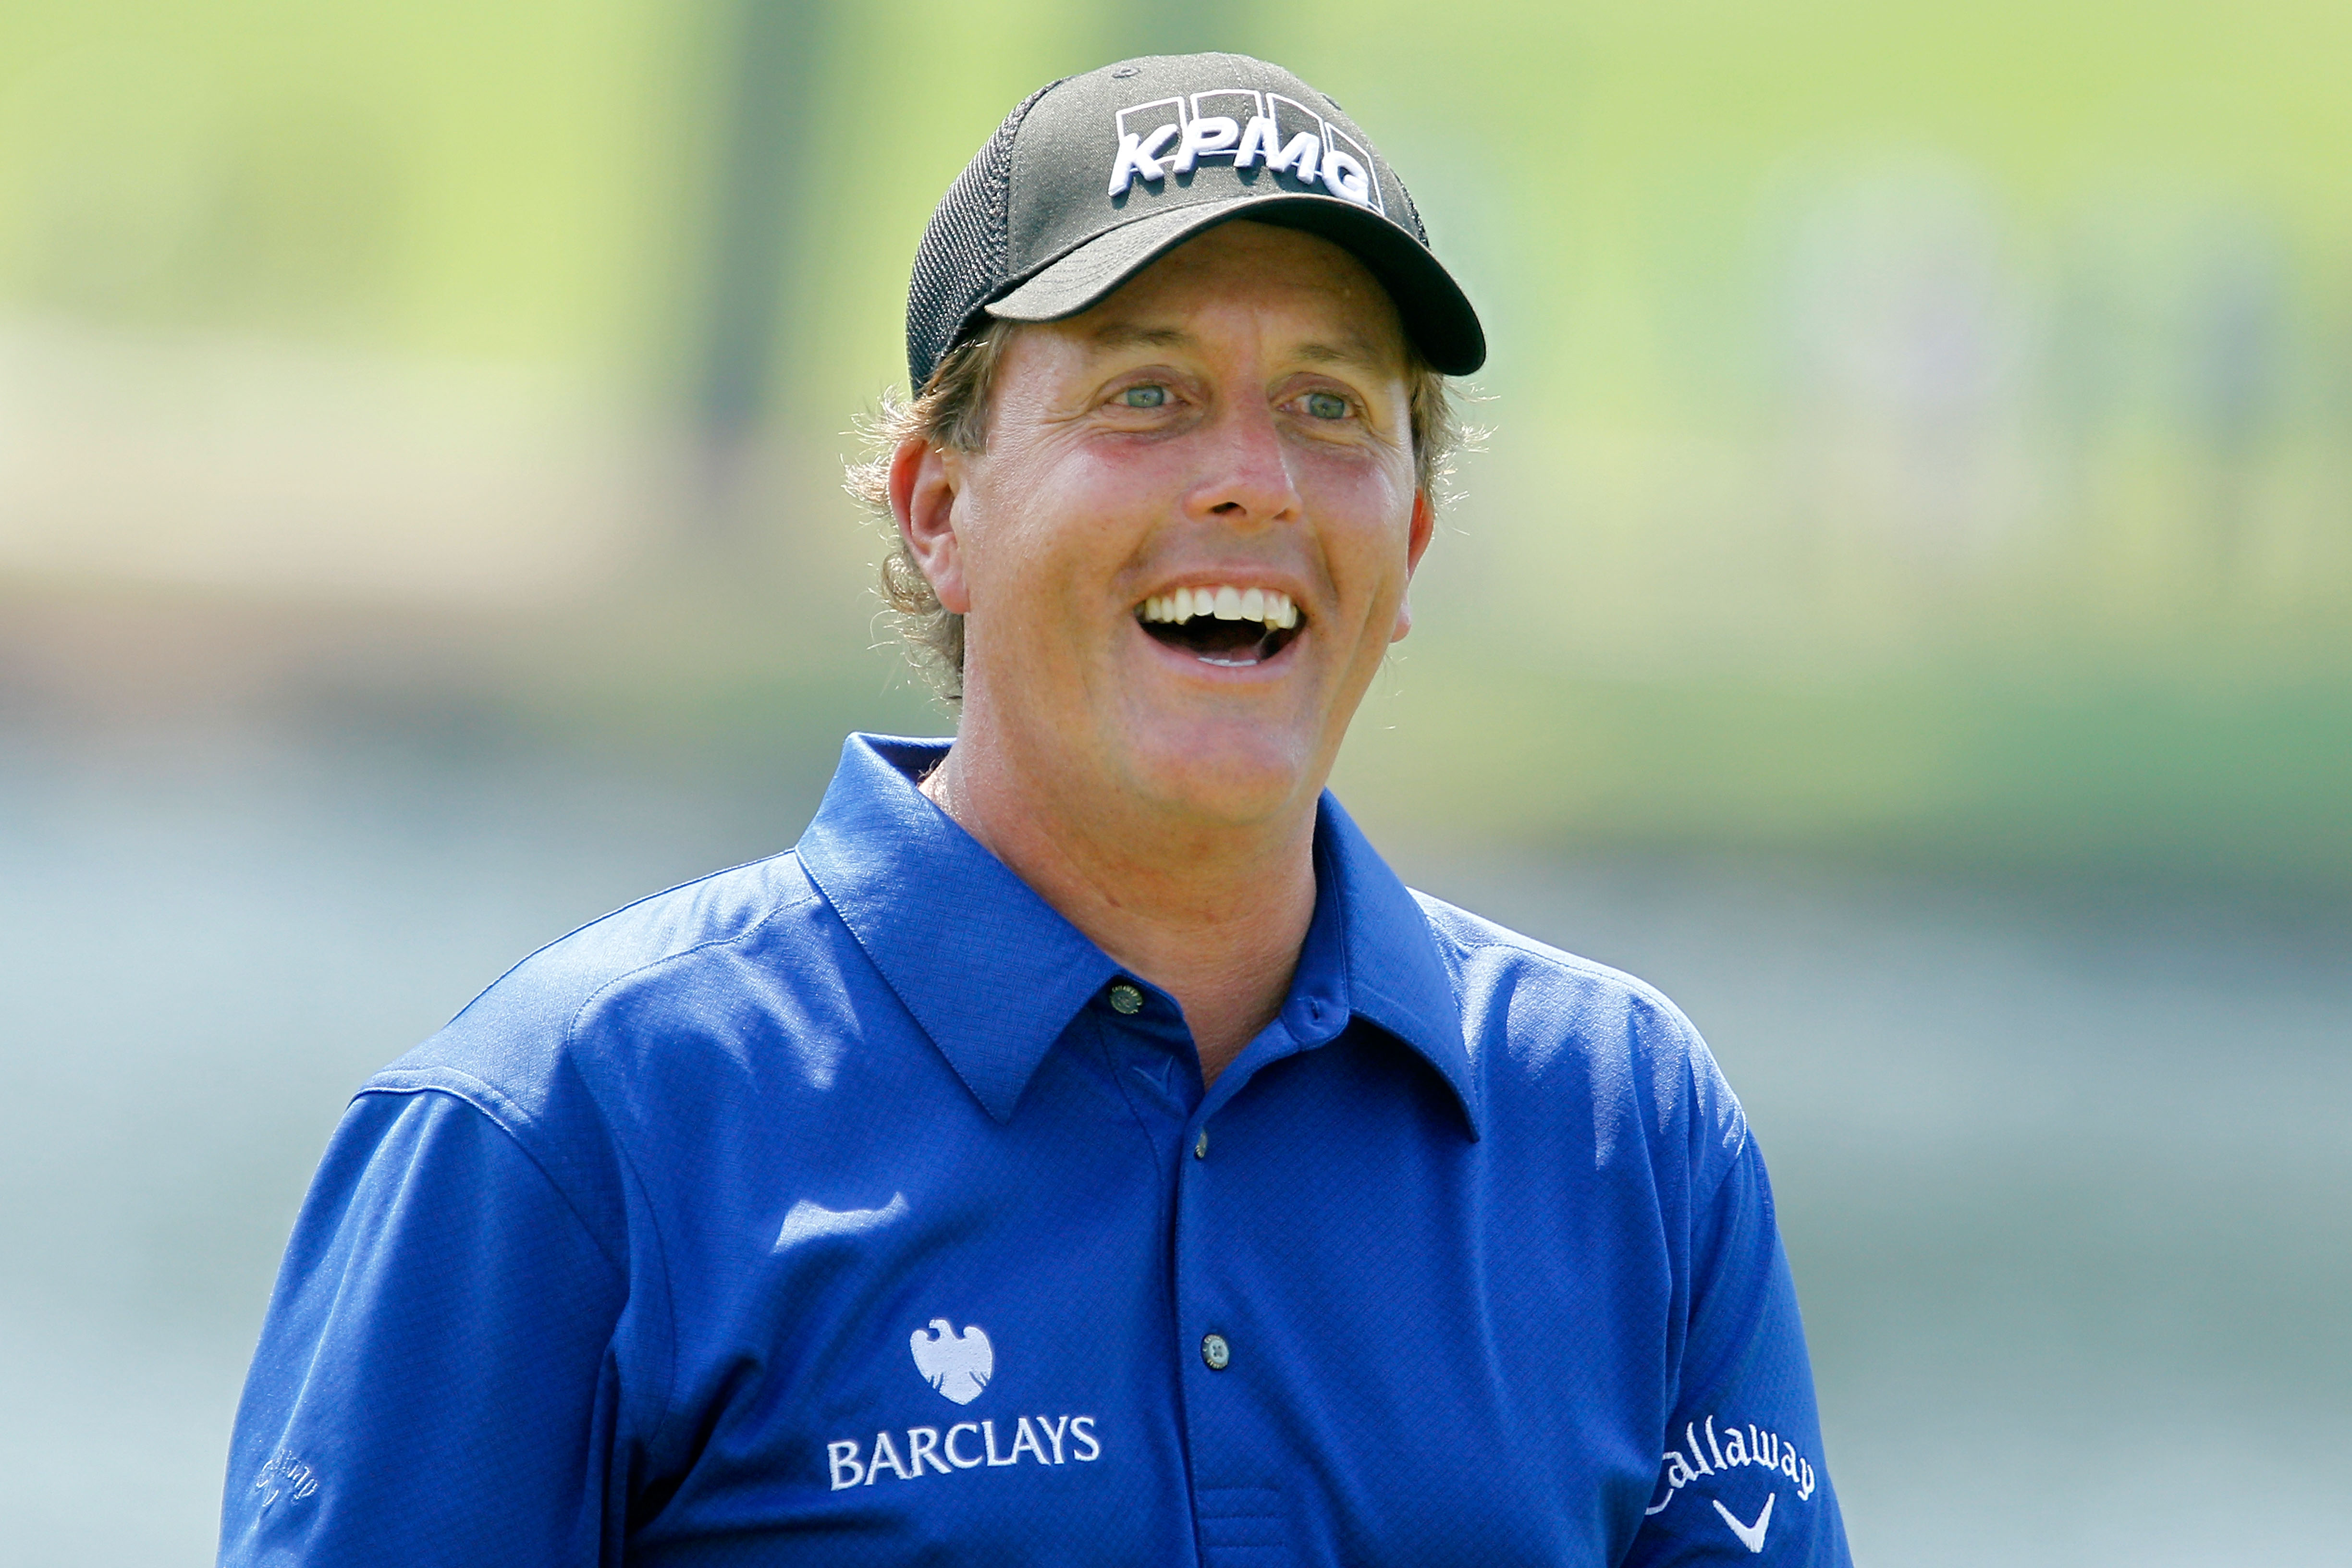 ATLANTA - SEPTEMBER 23:  Phil Mickelson smiles while on the practice range prior to playing his first round of THE TOUR Championship presented by Coca-Cola at East Lake Golf Club on September 23, 2010 in Atlanta, Georgia.  (Photo by Scott Halleran/Getty I